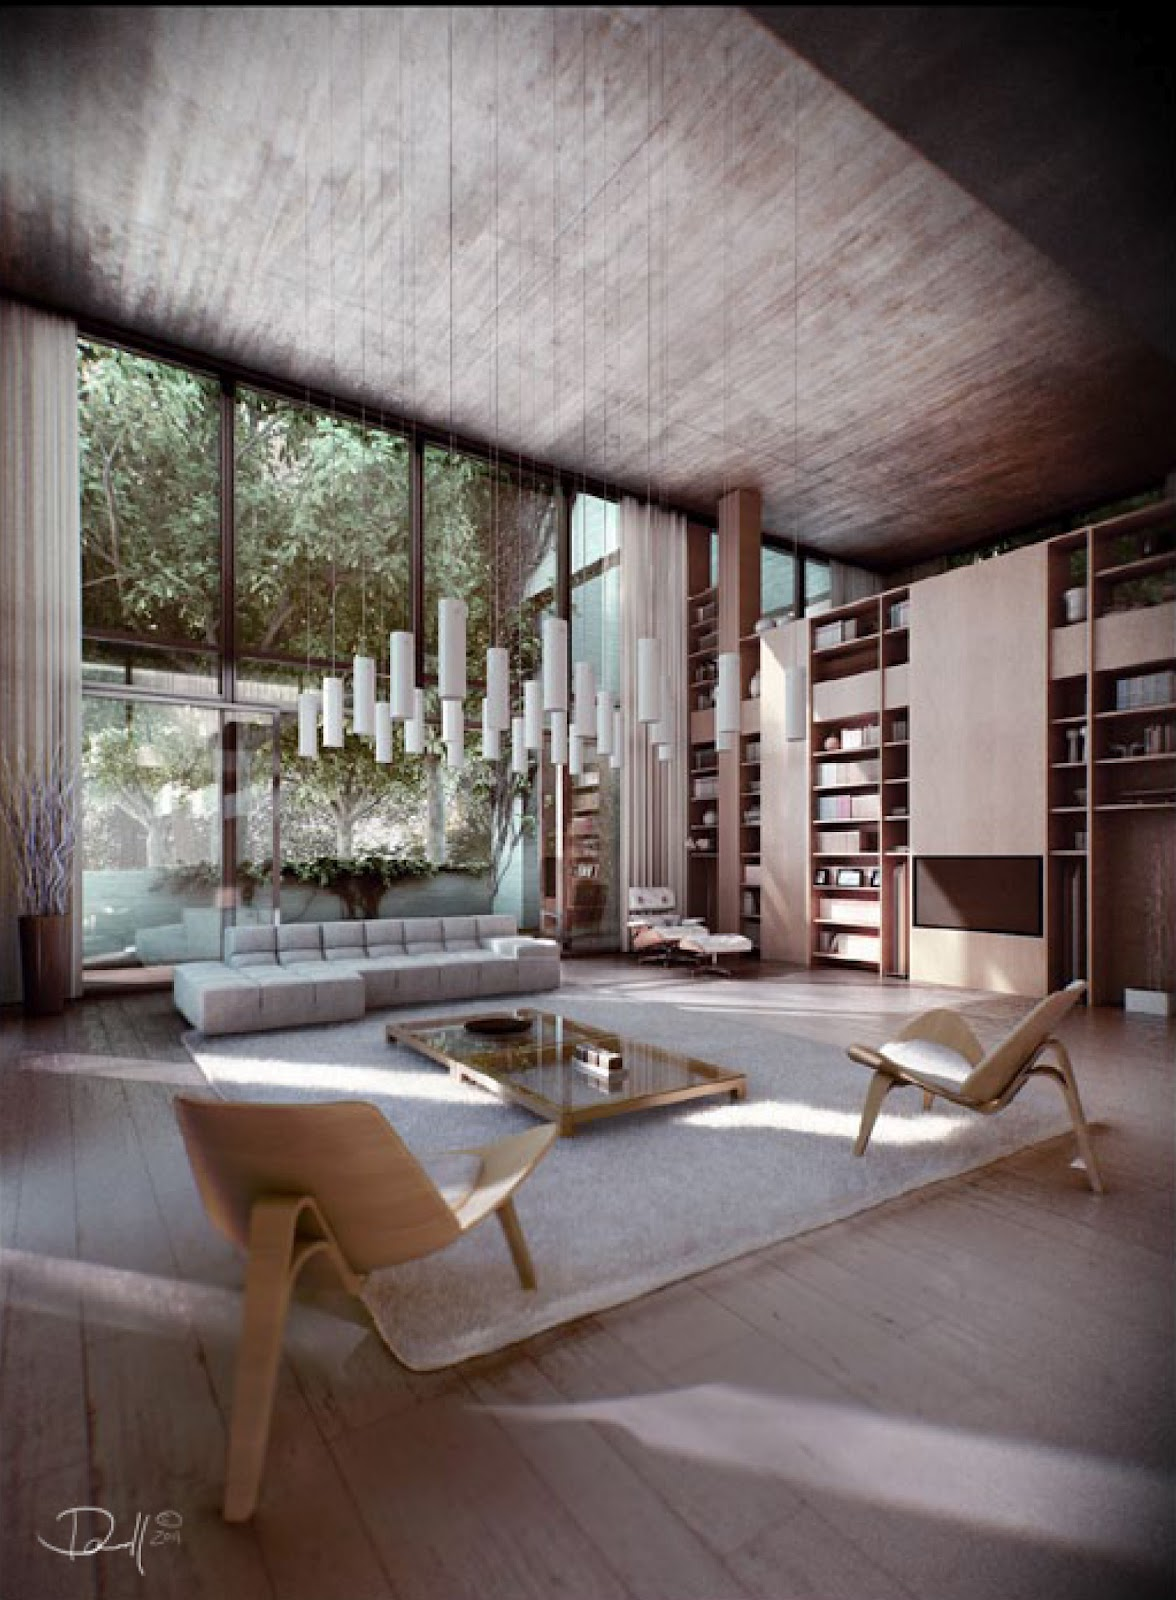 Inson Dubois Wood LLC One Of The Top Interior Designers In New York City Works With Several Ultra High End Computer Renderers Who Utilize Rhino